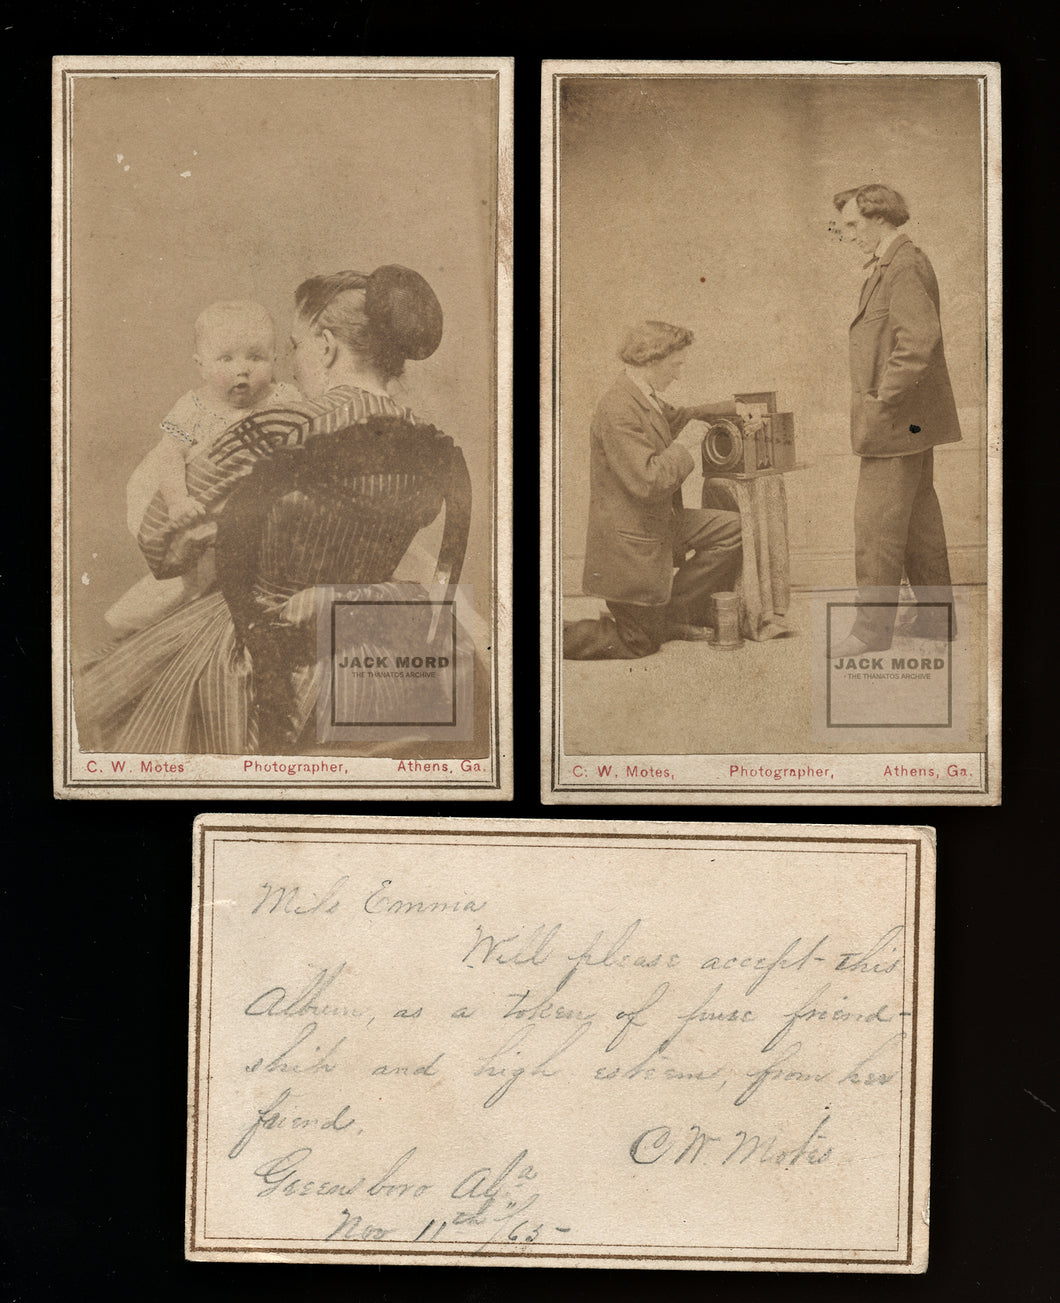 1860s Georgia Photographer Motes w Camera & Family Civil War Confederate Soldier